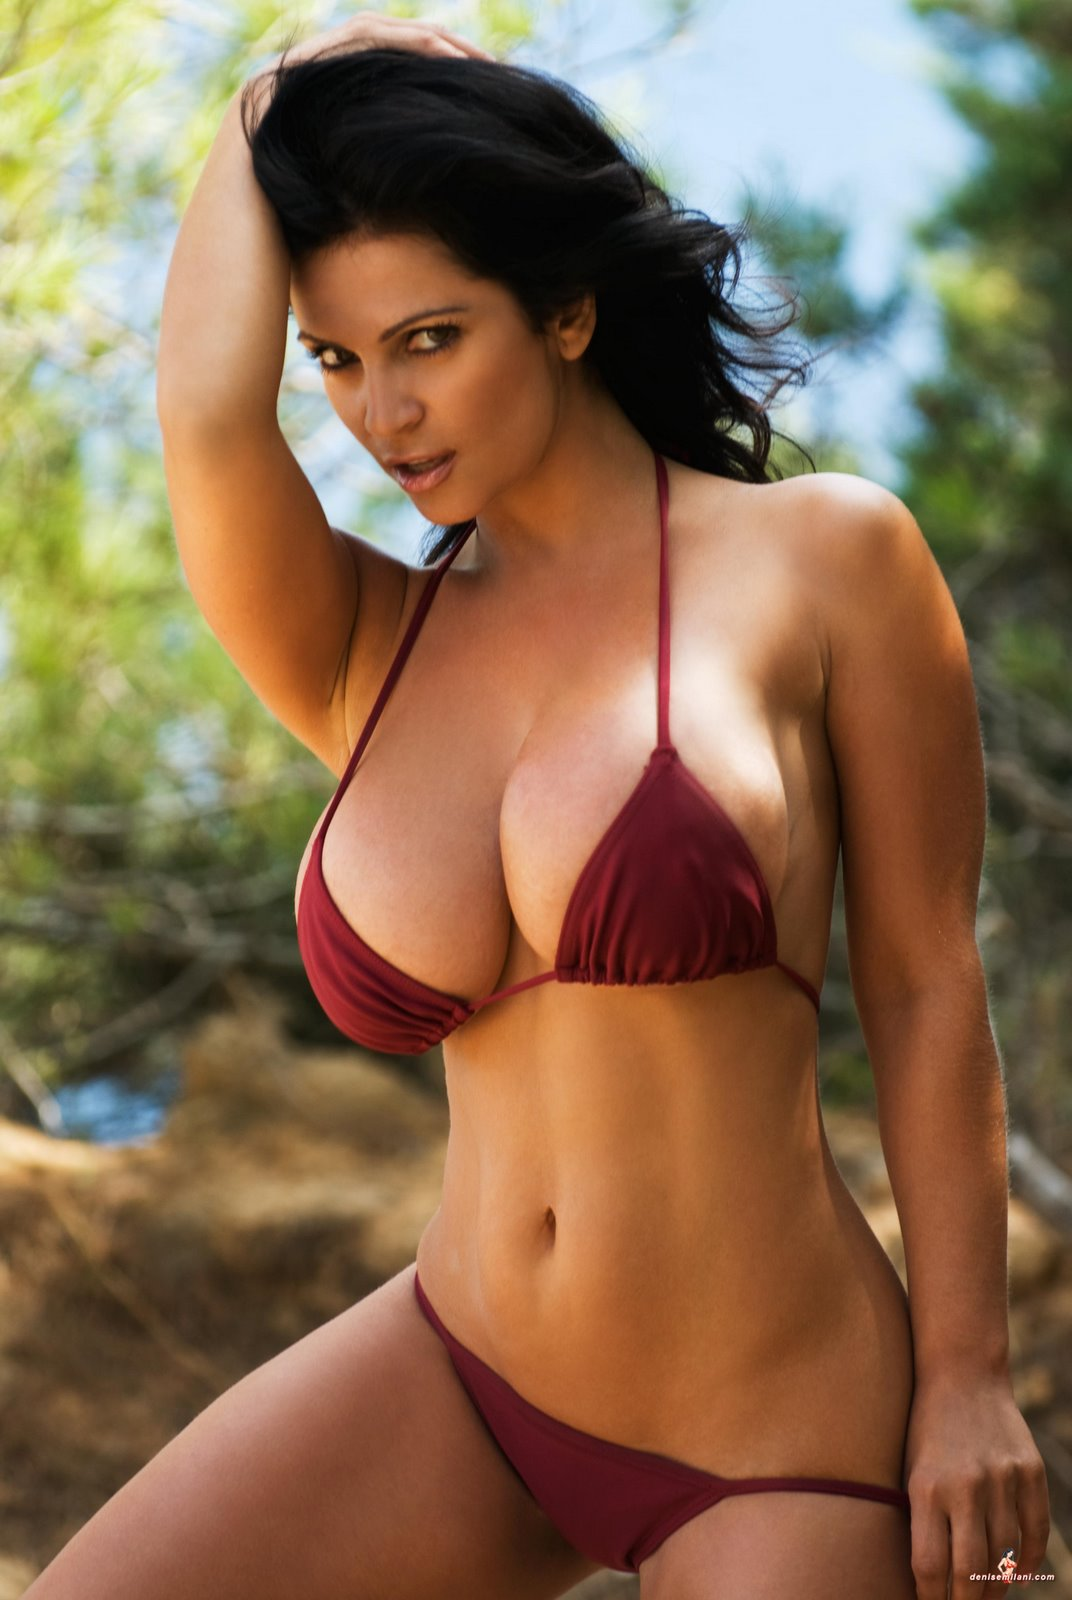 PhimVu Blog: Denise Milani burgundy